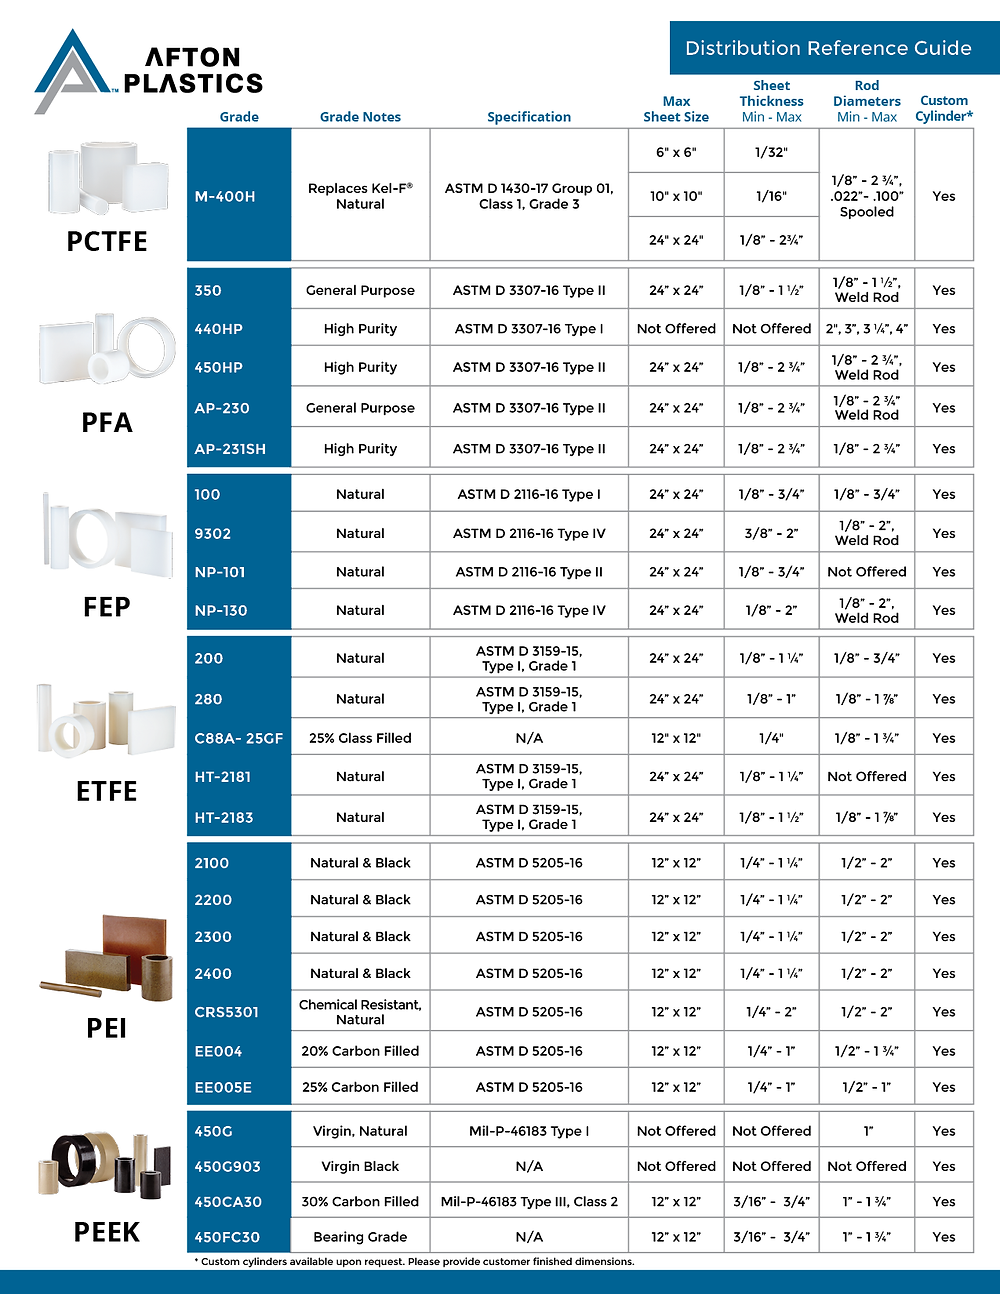 Afton Plastics Quick Reference Guide